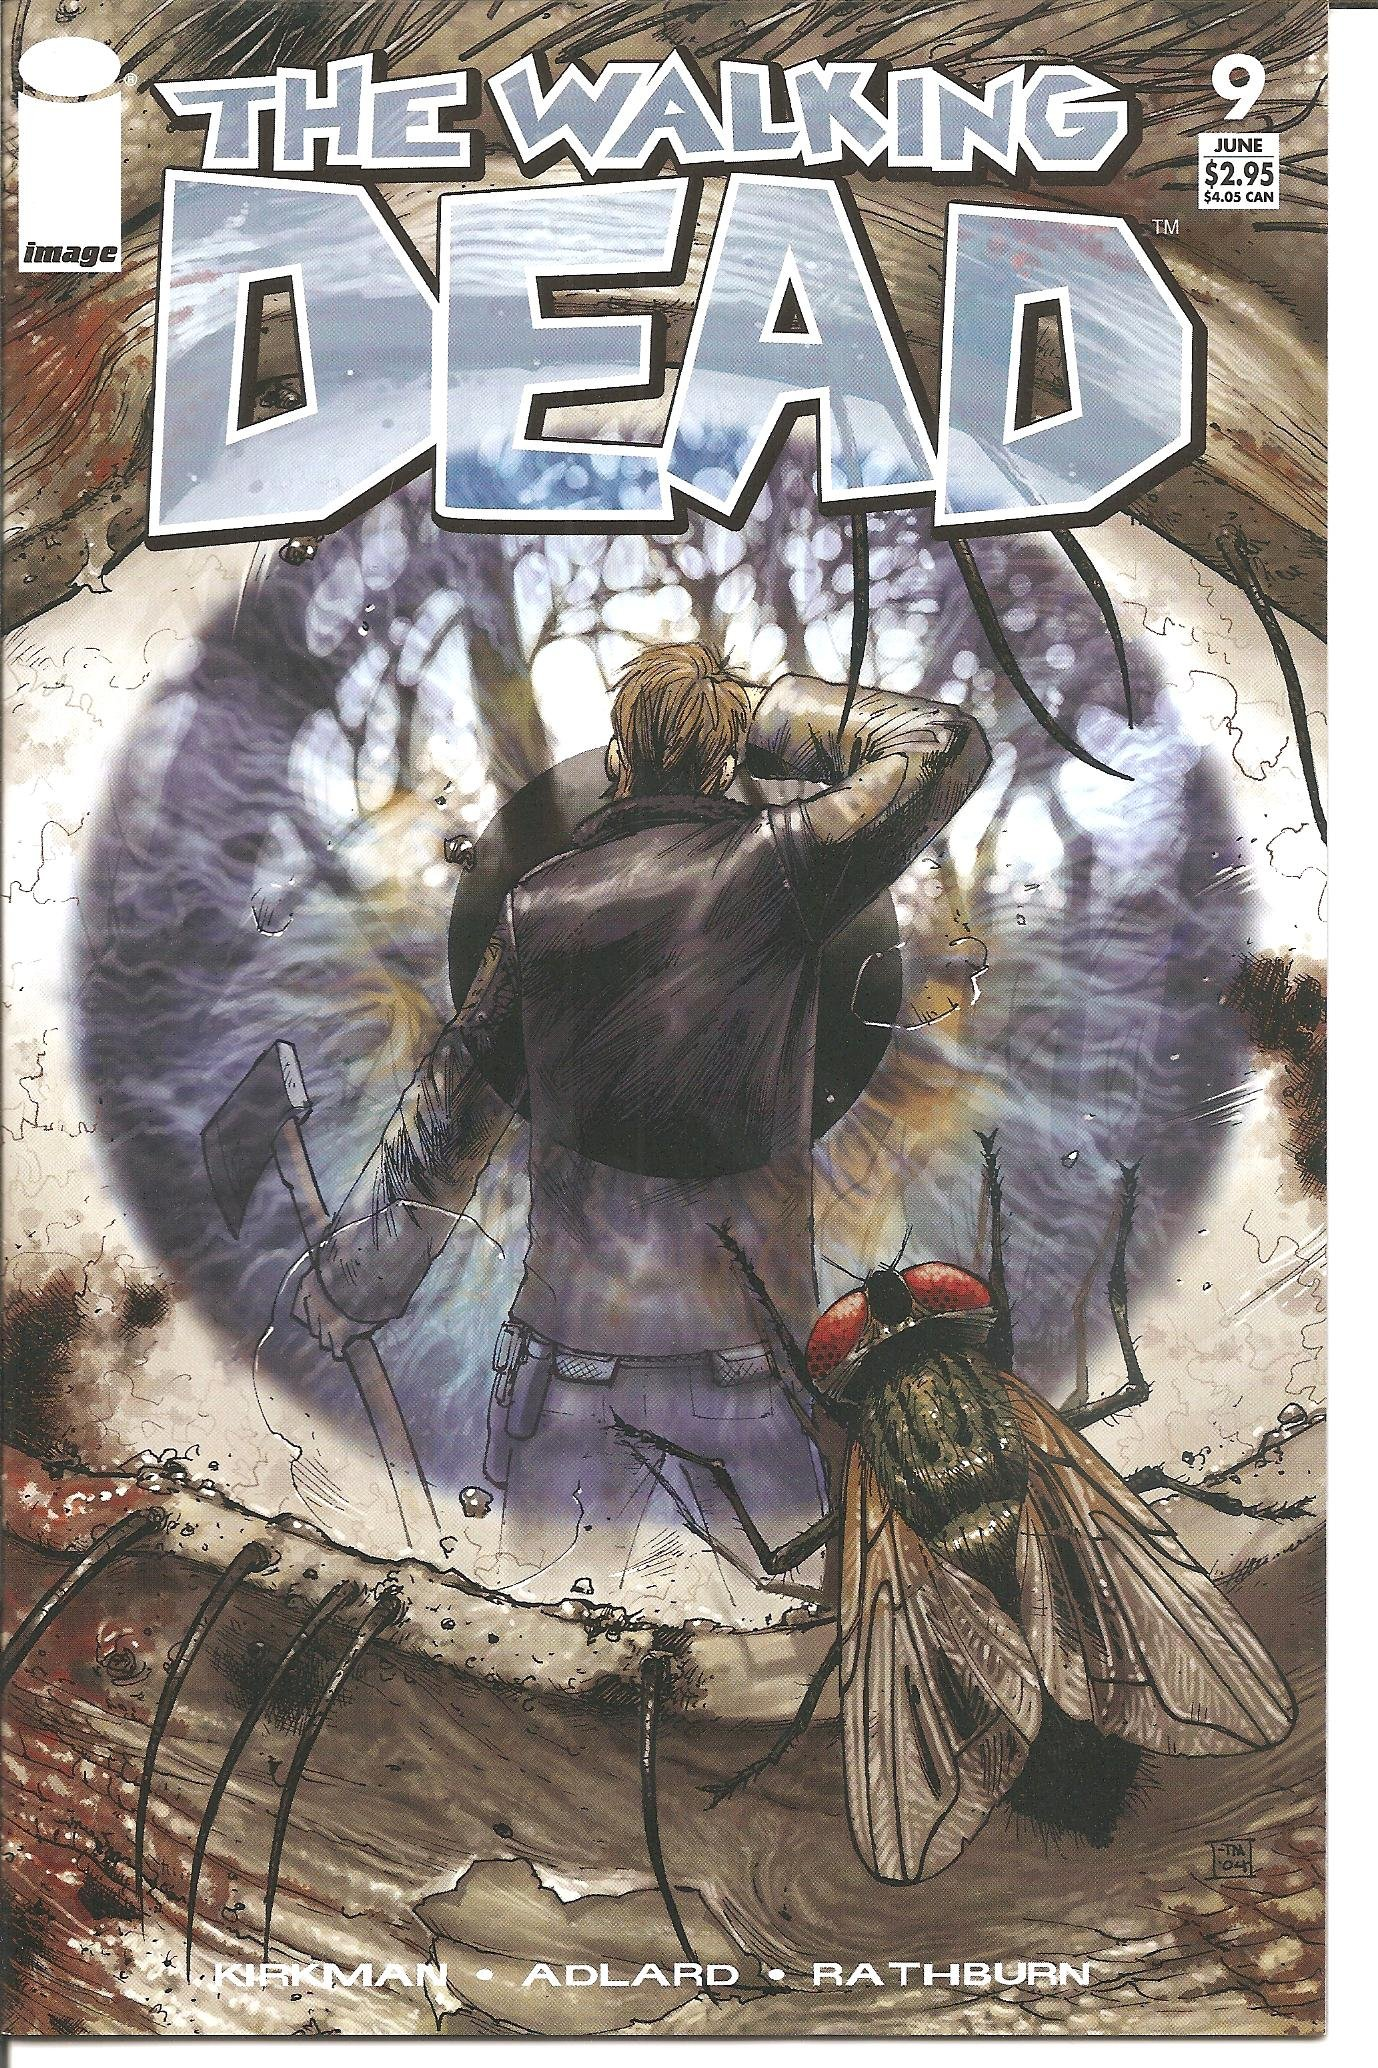 Read Online Walking Dead #9 1st Printing! NM Kirkman (Walking Dead, 1) ebook